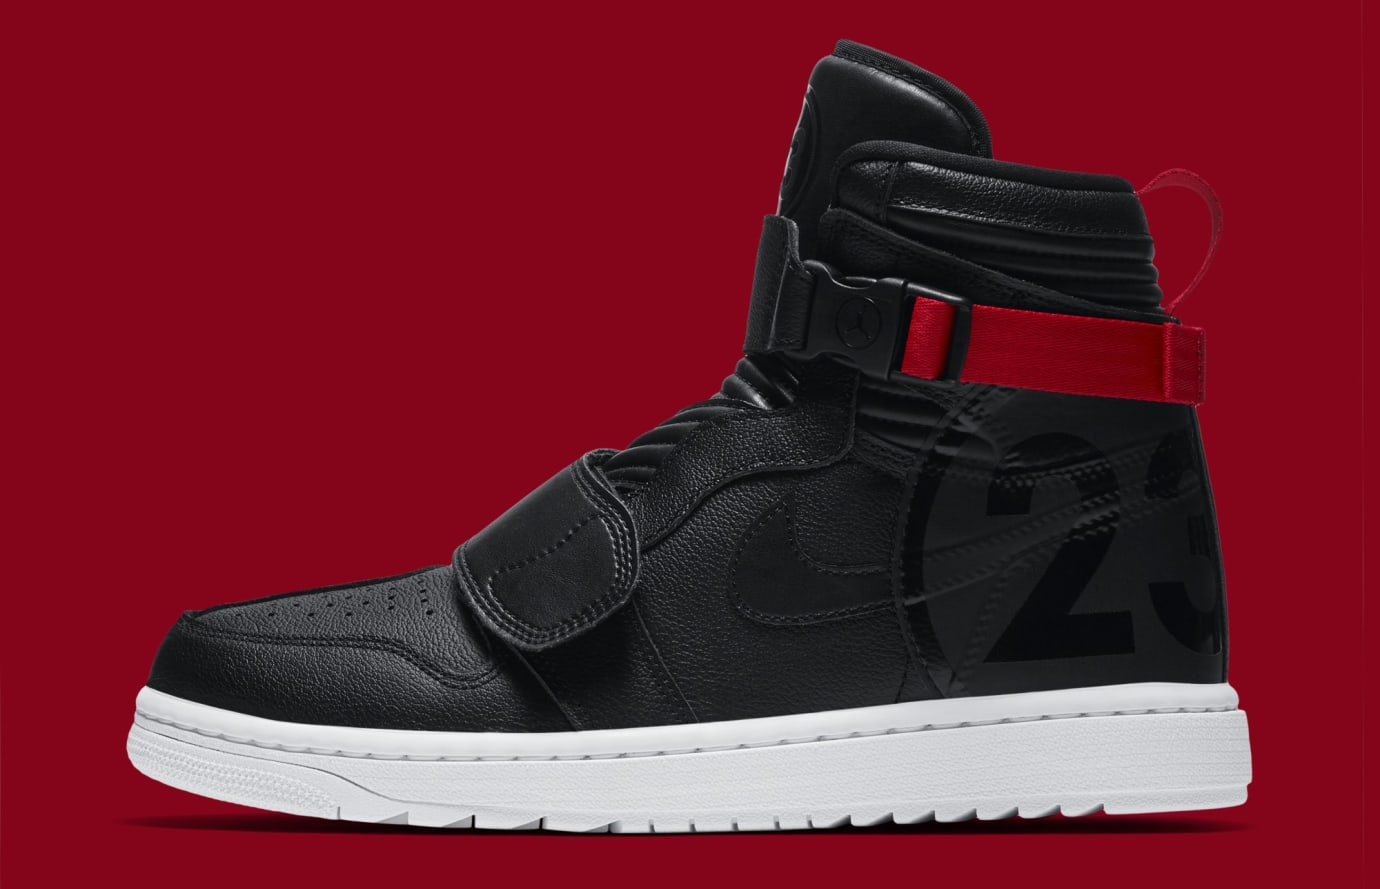 Air Jordan 1 Motorsports 'Black/Red' AT3146-001 (Lateral)